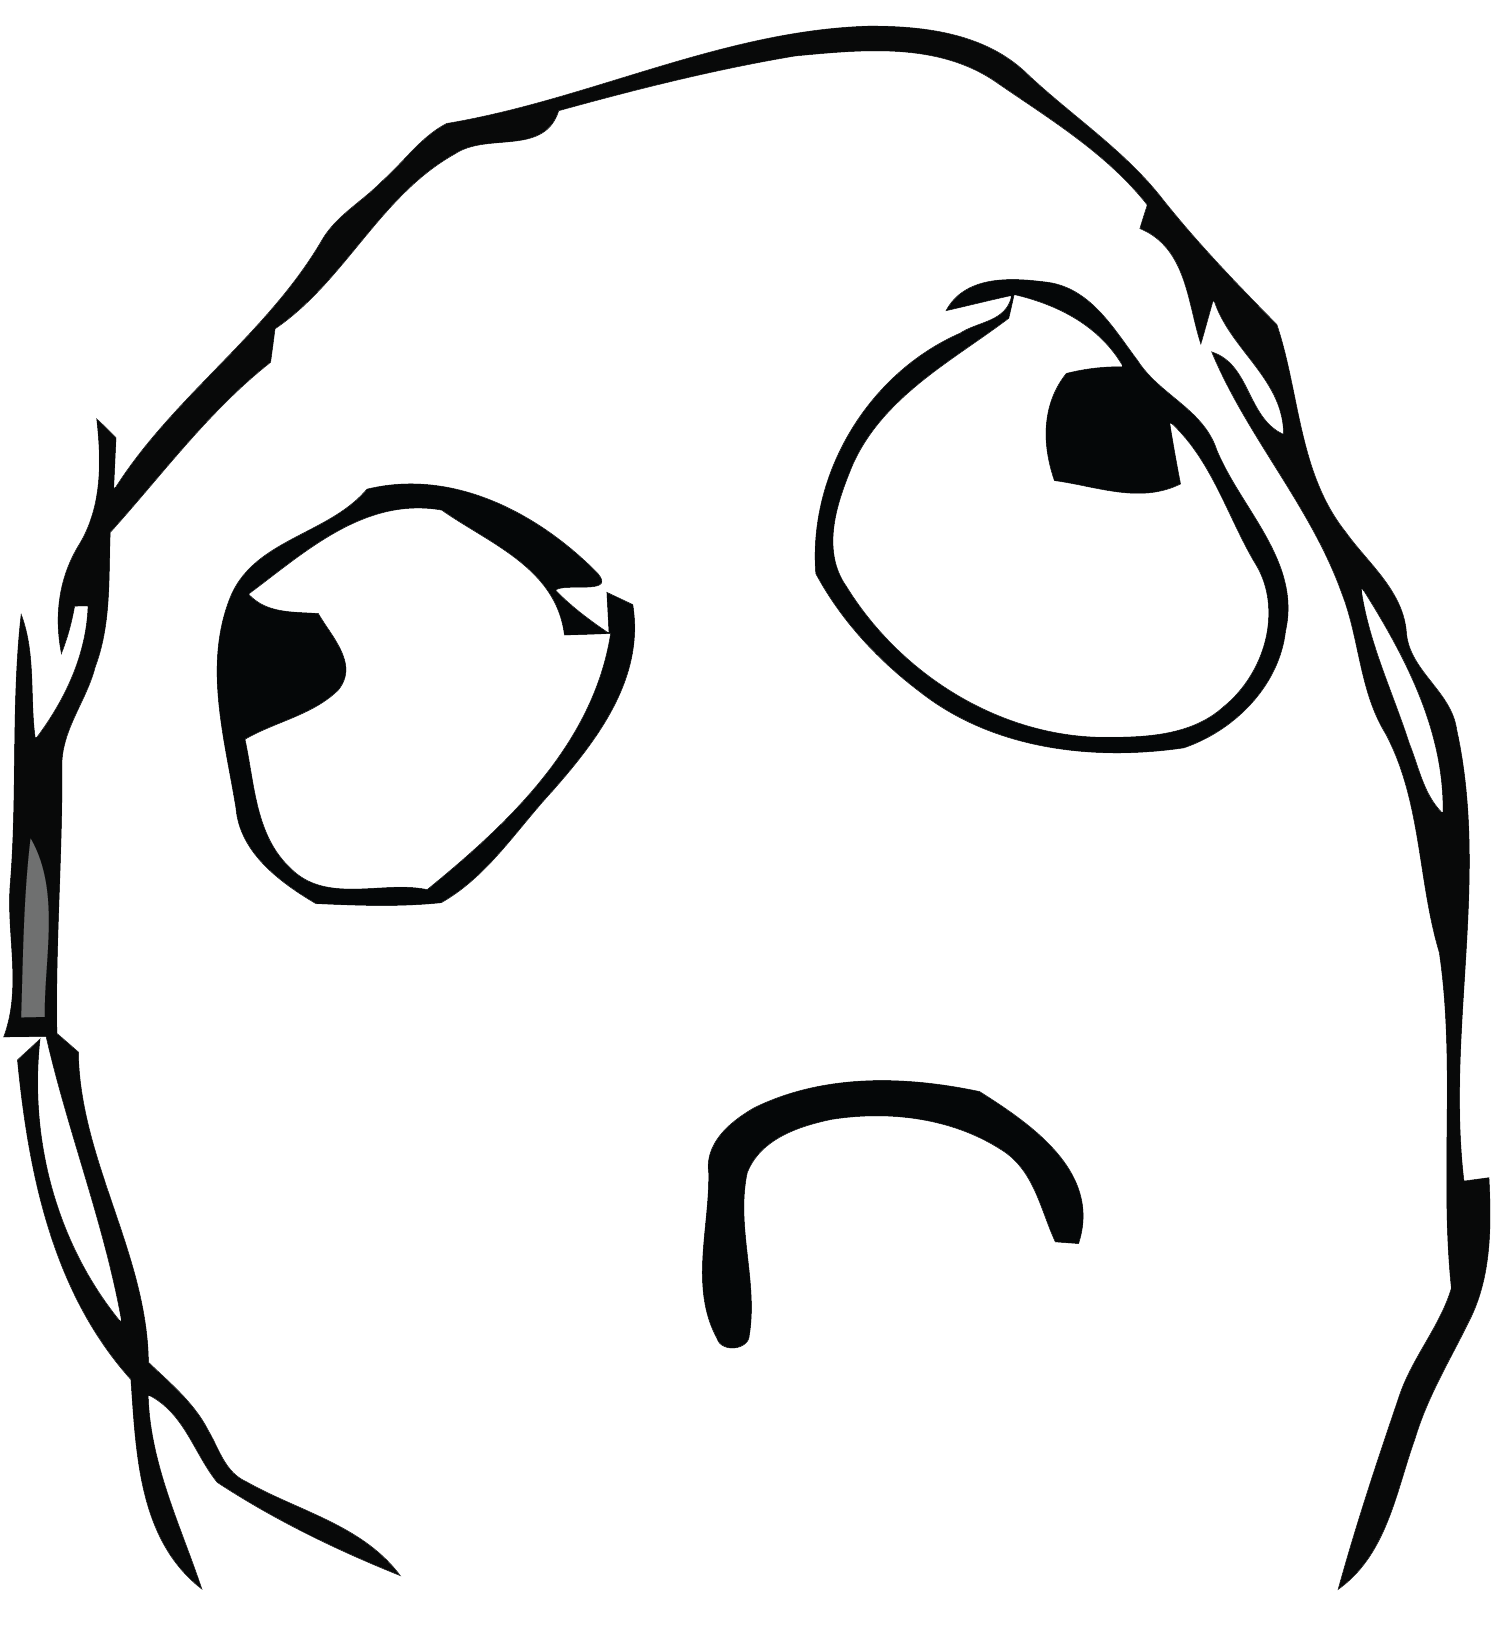 Rage Face Troll Face transparent PNG.